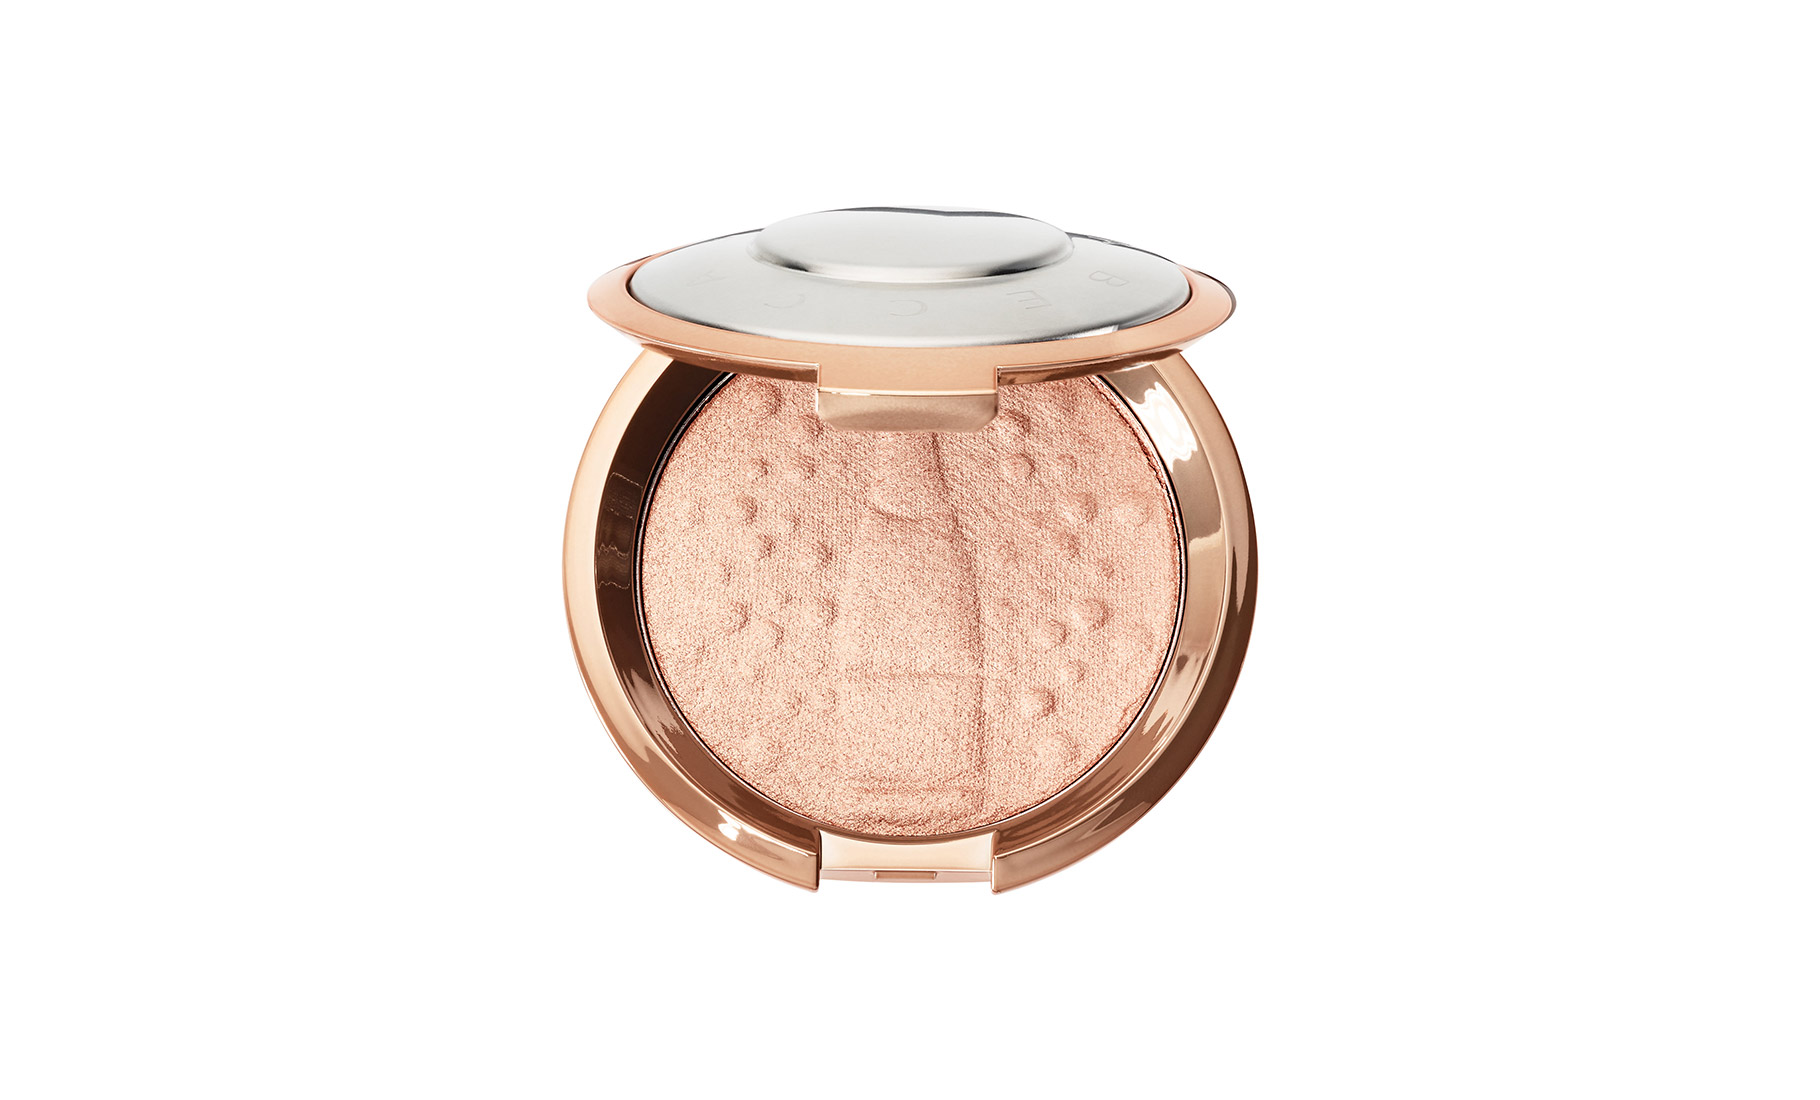 BECCA Shimmering Skin Pressed Highlighter